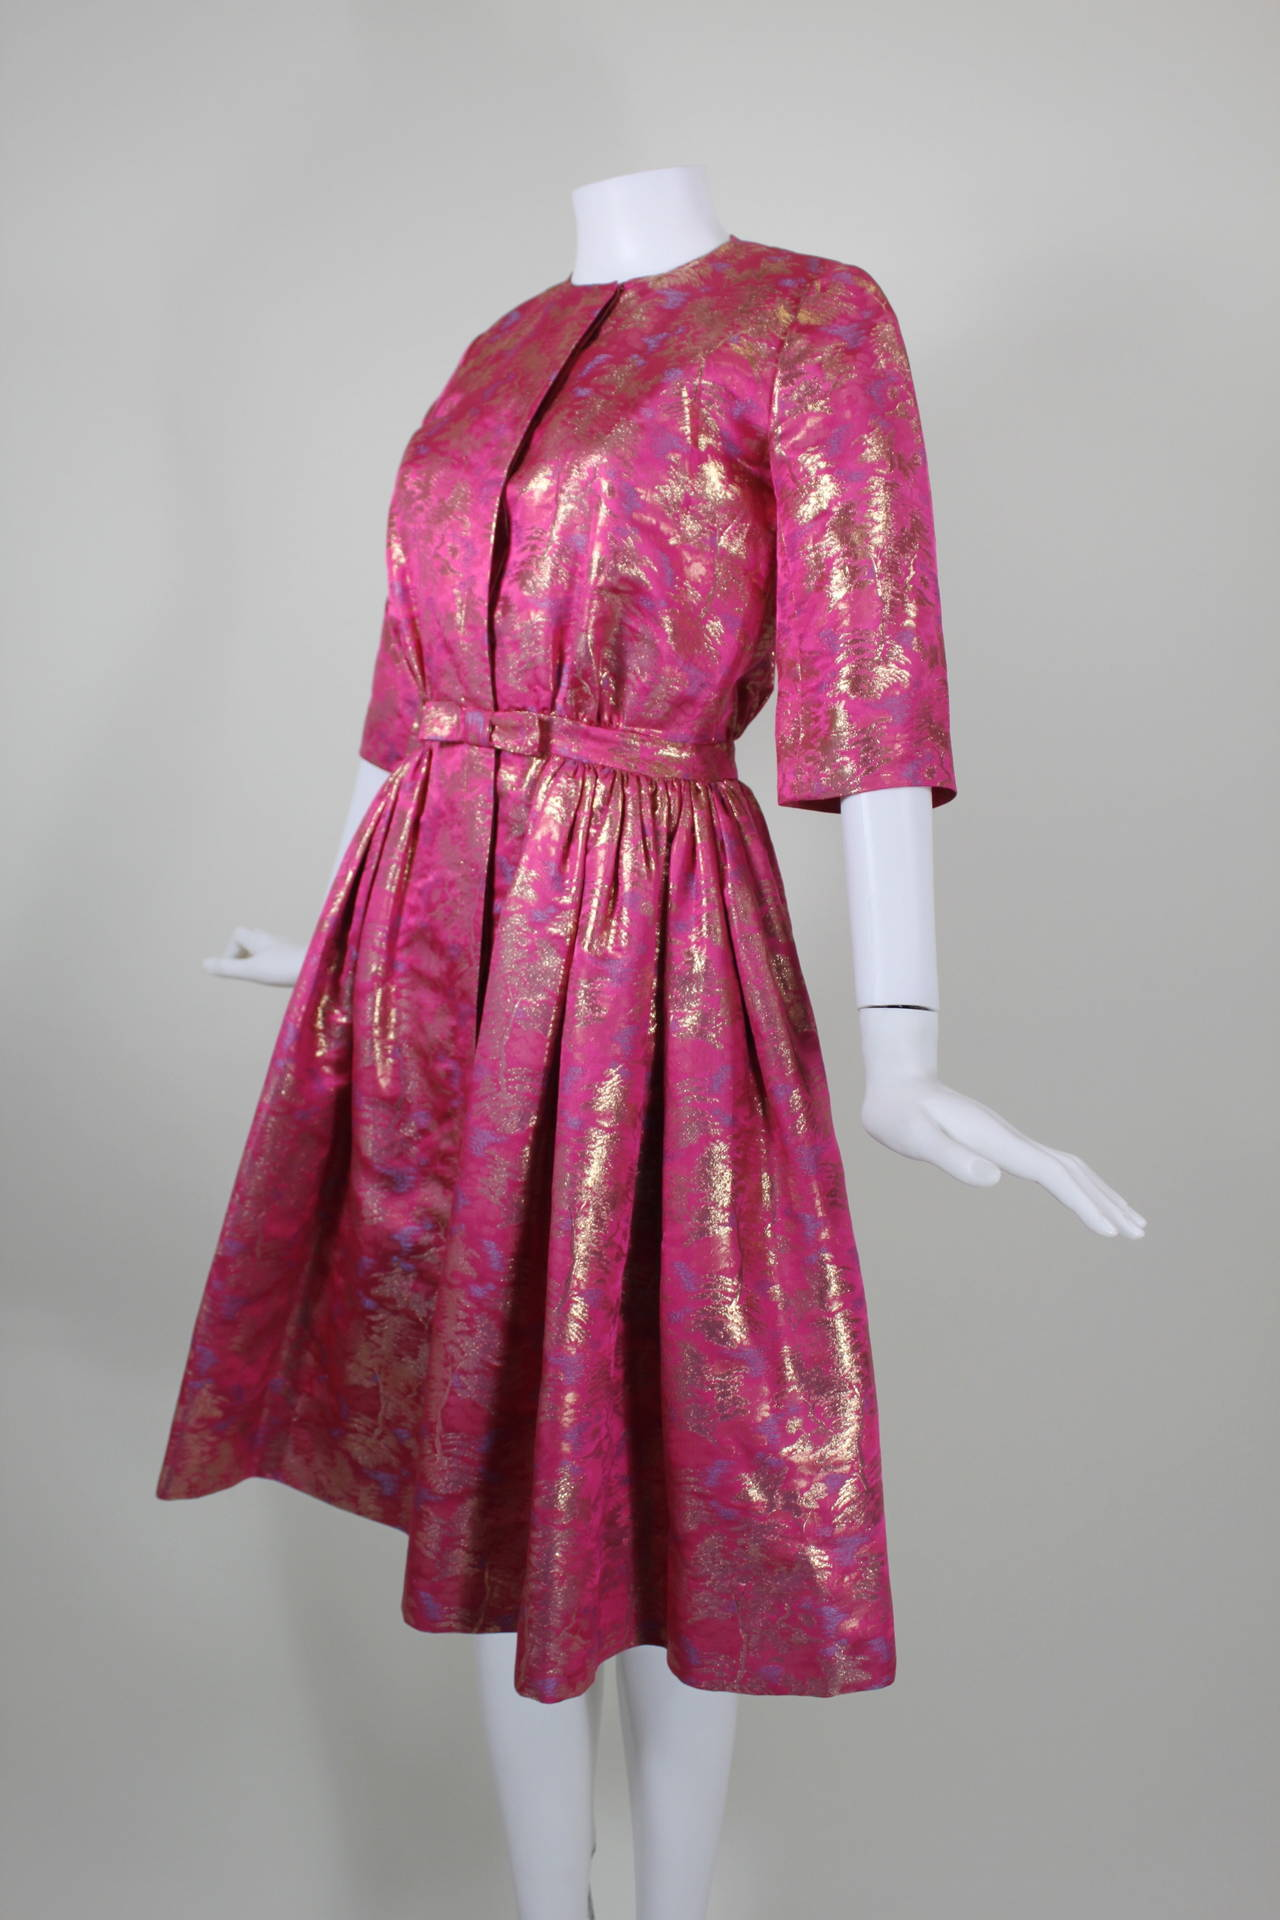 Larry Aldrich Hot Pink and Gold Tree Motif Brocade Dress 6